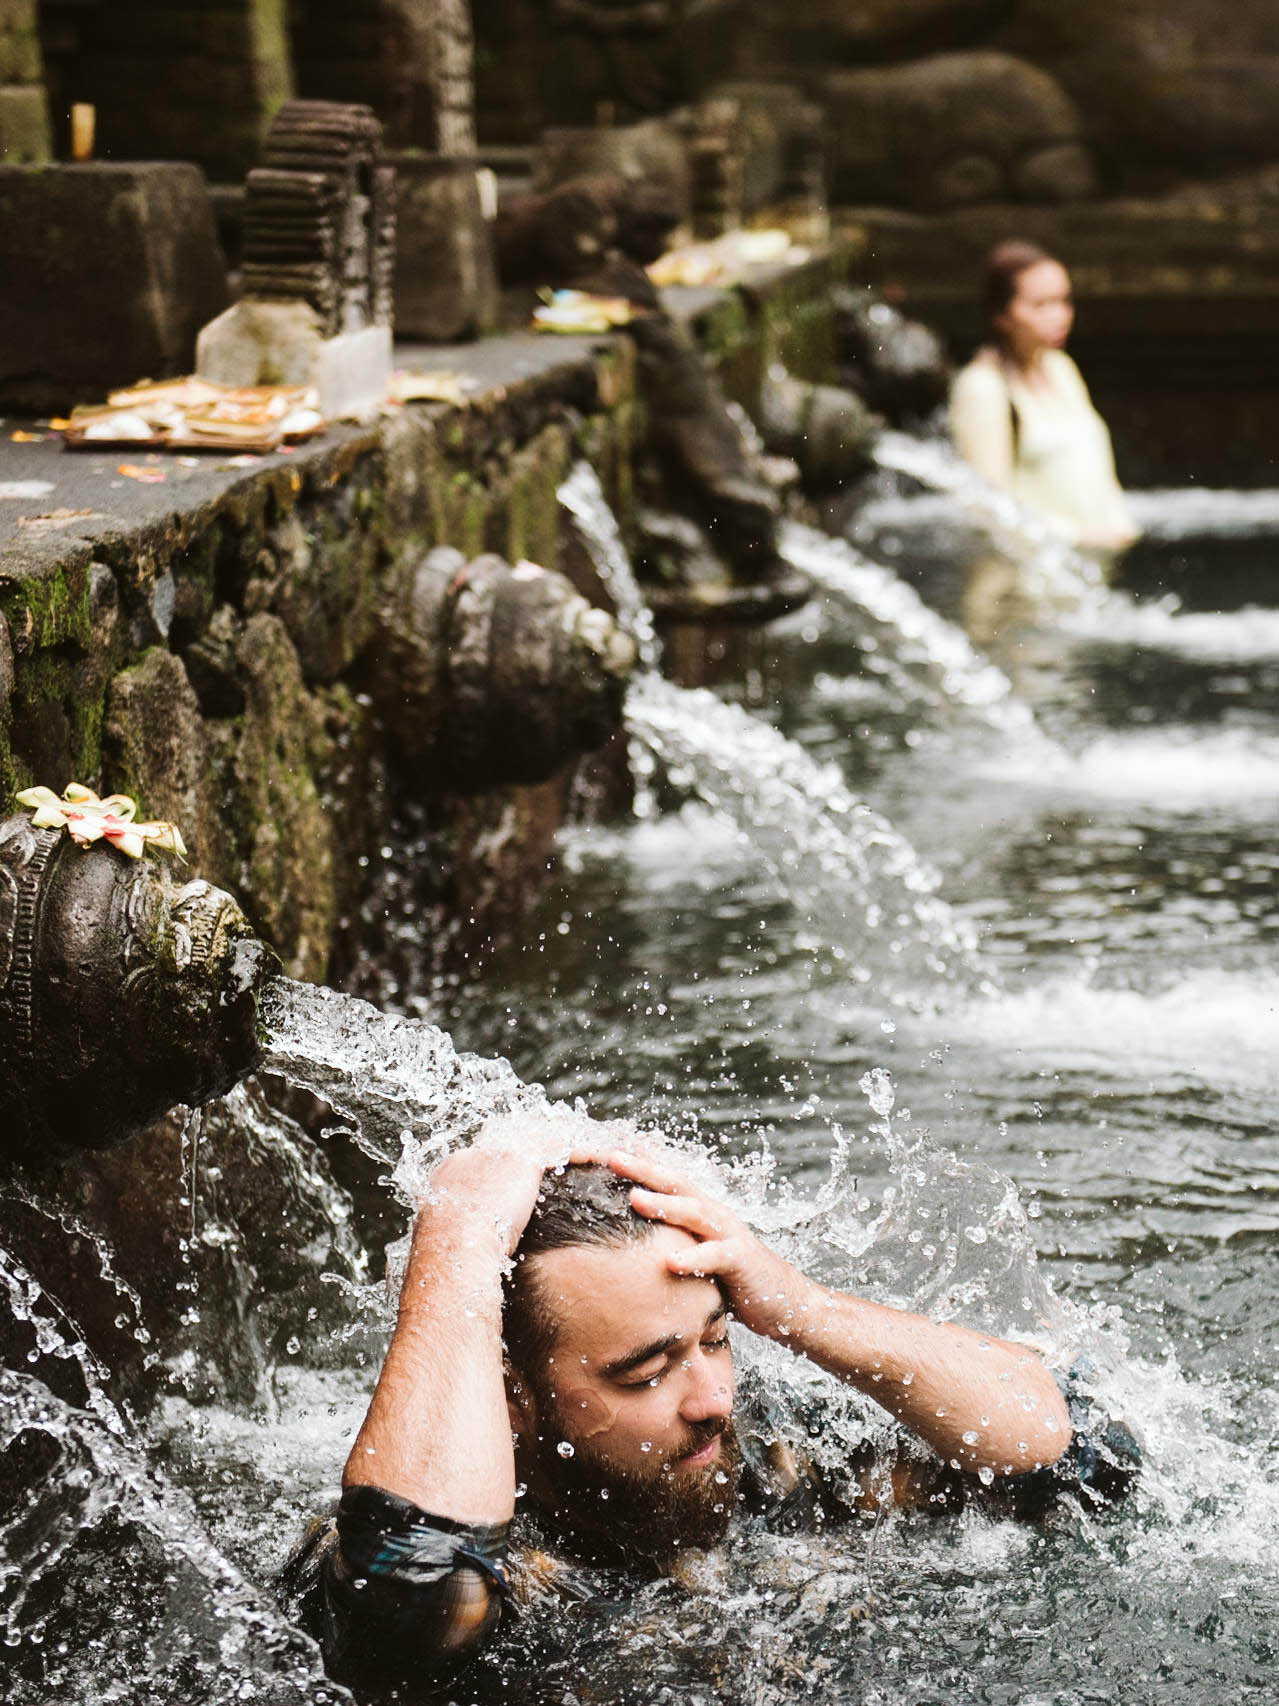 Roky spending his 33rd birthday taking a plunge in Bali's holy water at Tanah Lot Temple